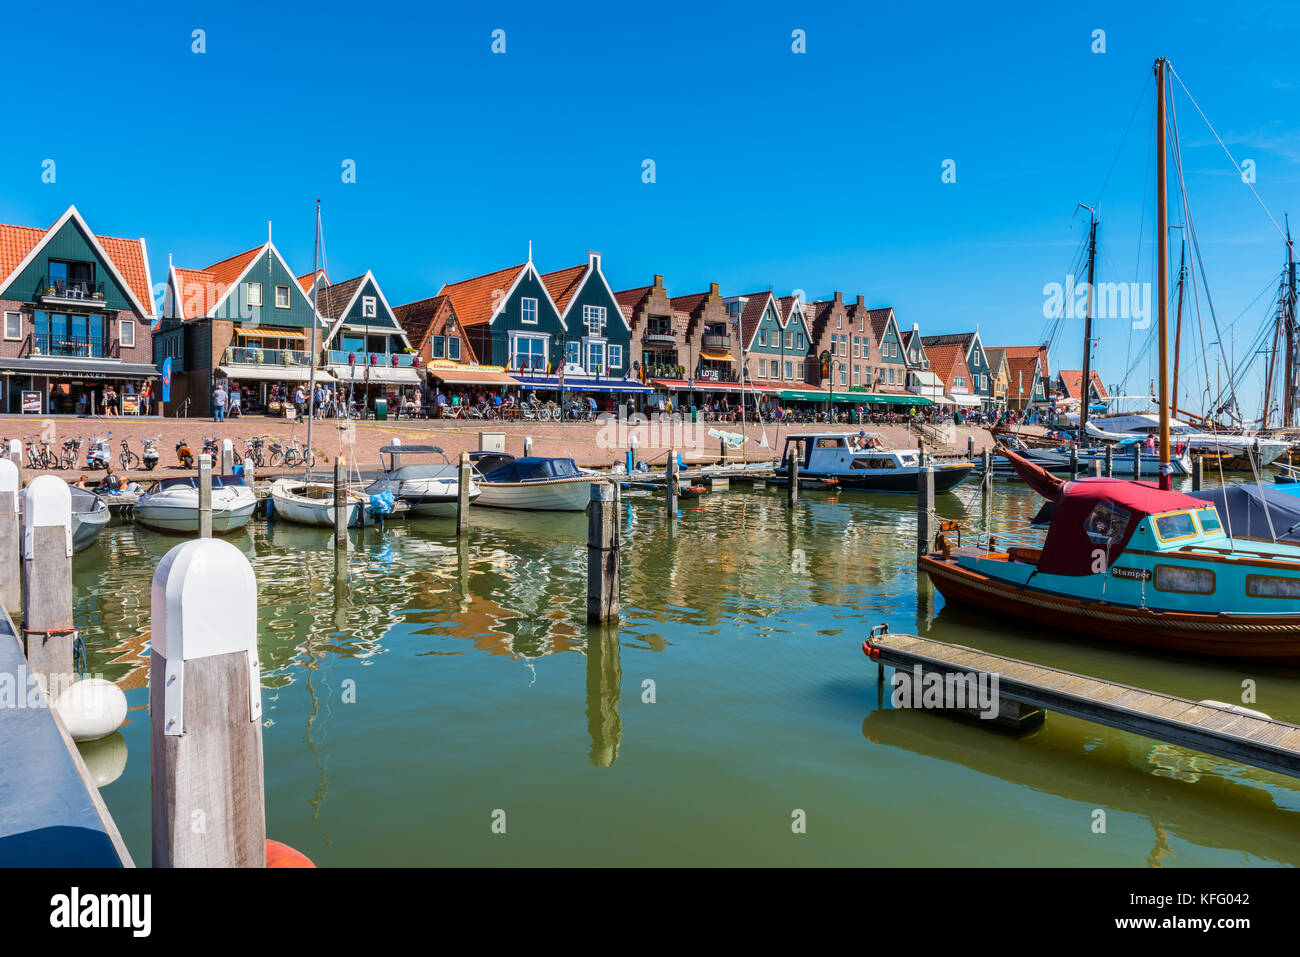 View on the town center of Volendam, Netherlands. Volendam is a popular tourist attraction in the Netherlands, 20 Stock Photo